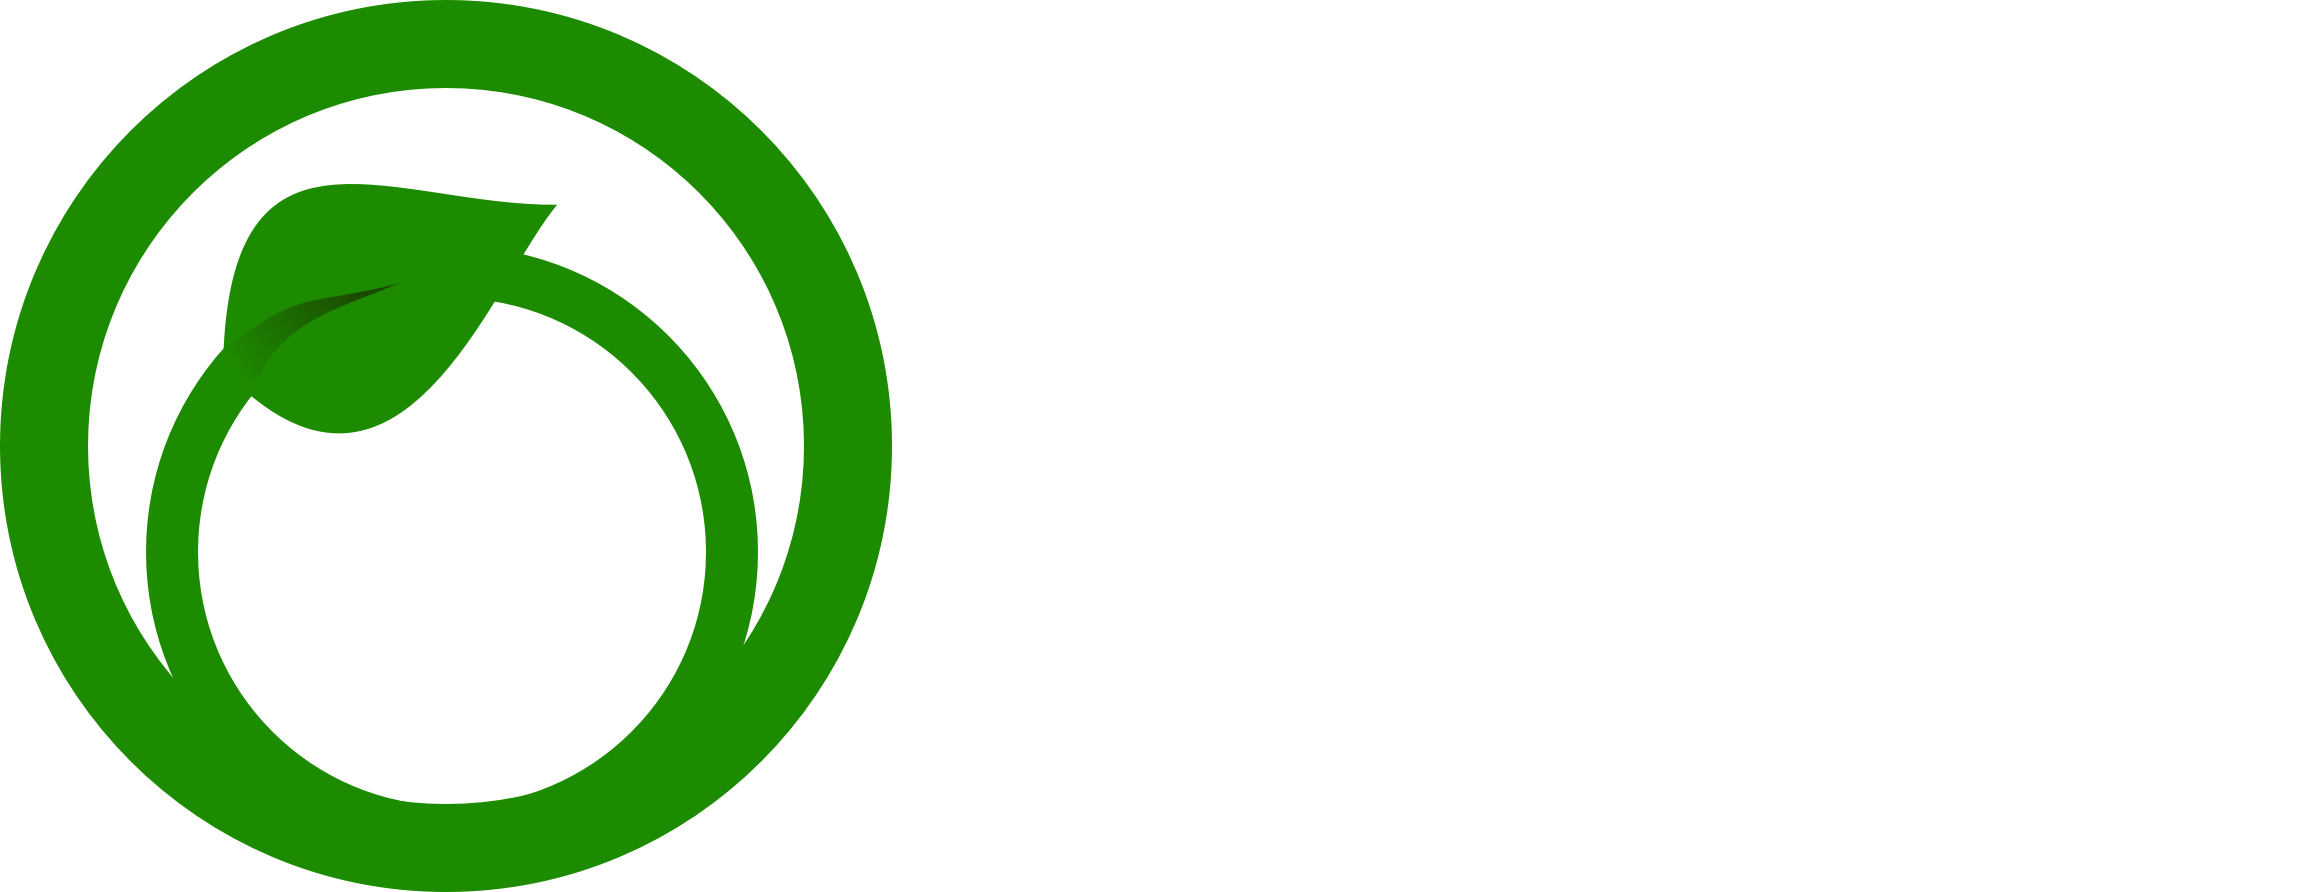 The Urban Tree Village